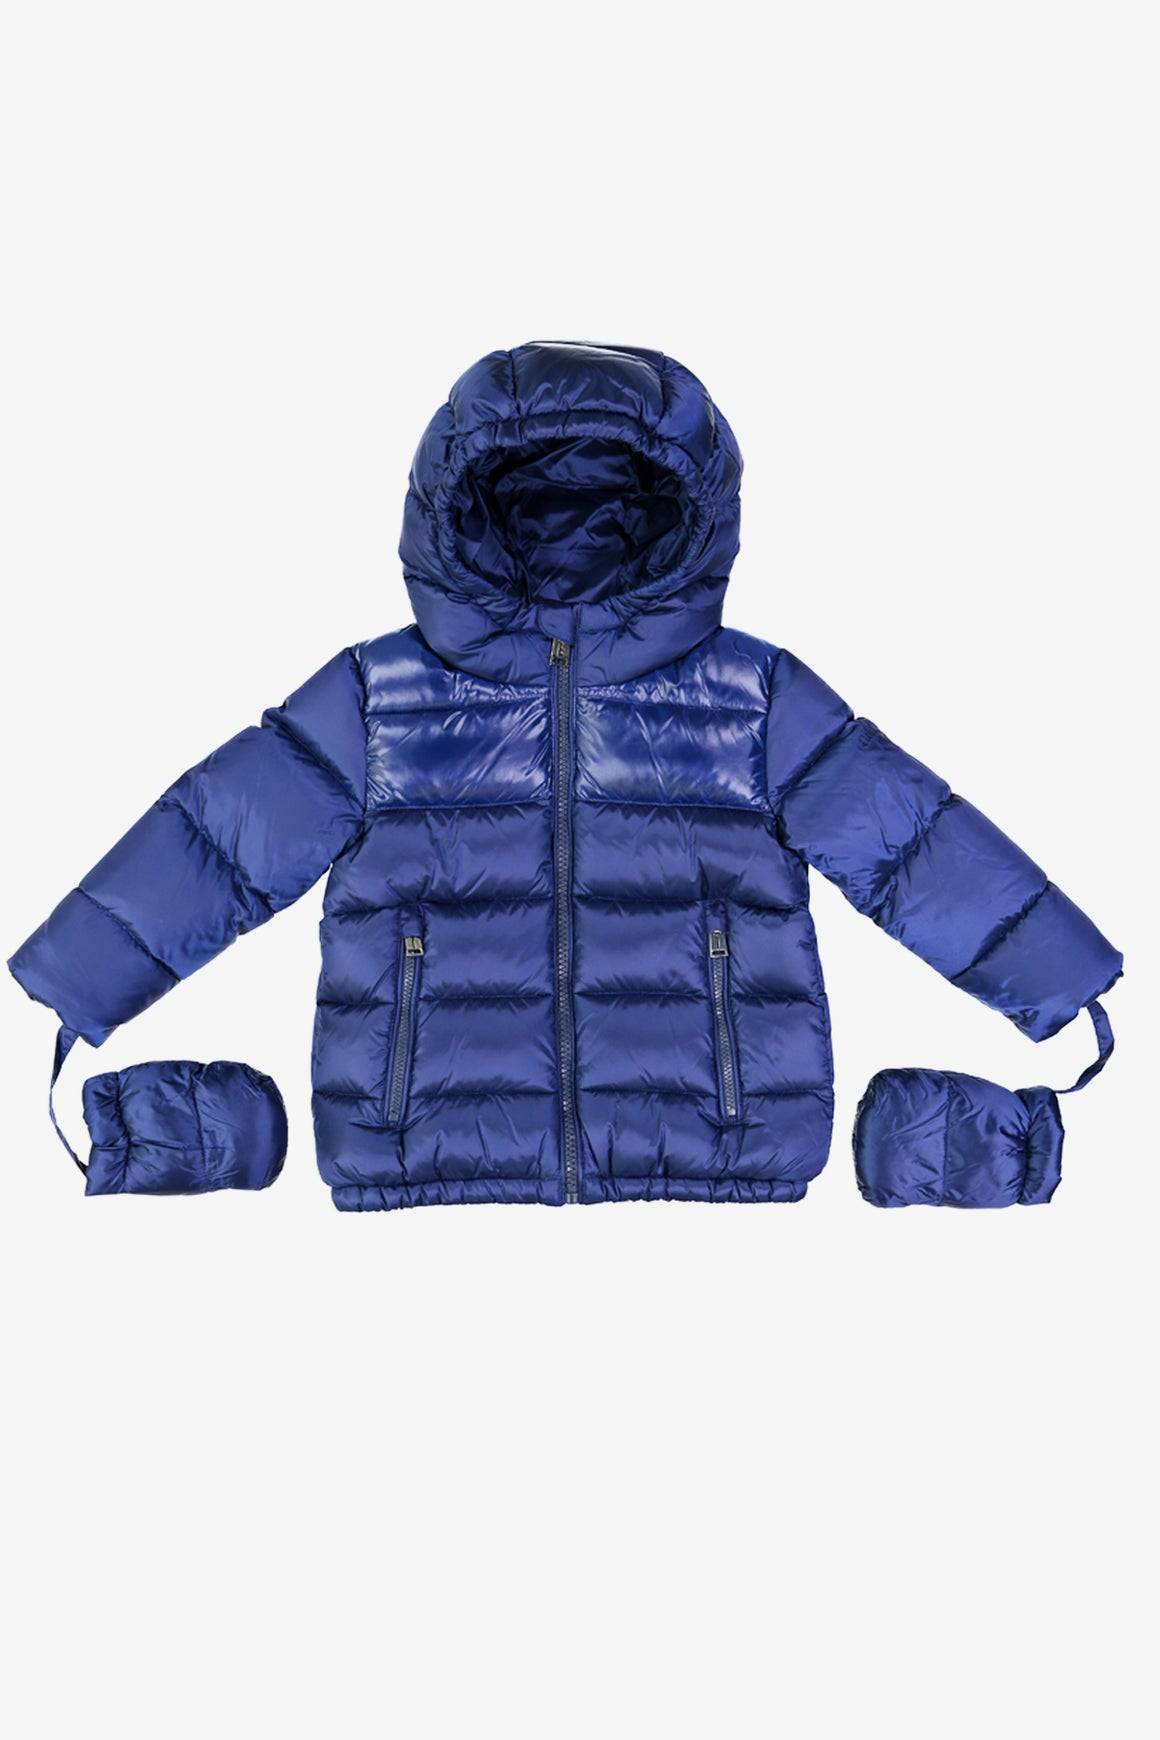 ADD Down Baby Boy Jacket with Mitts in Sapphire Blue